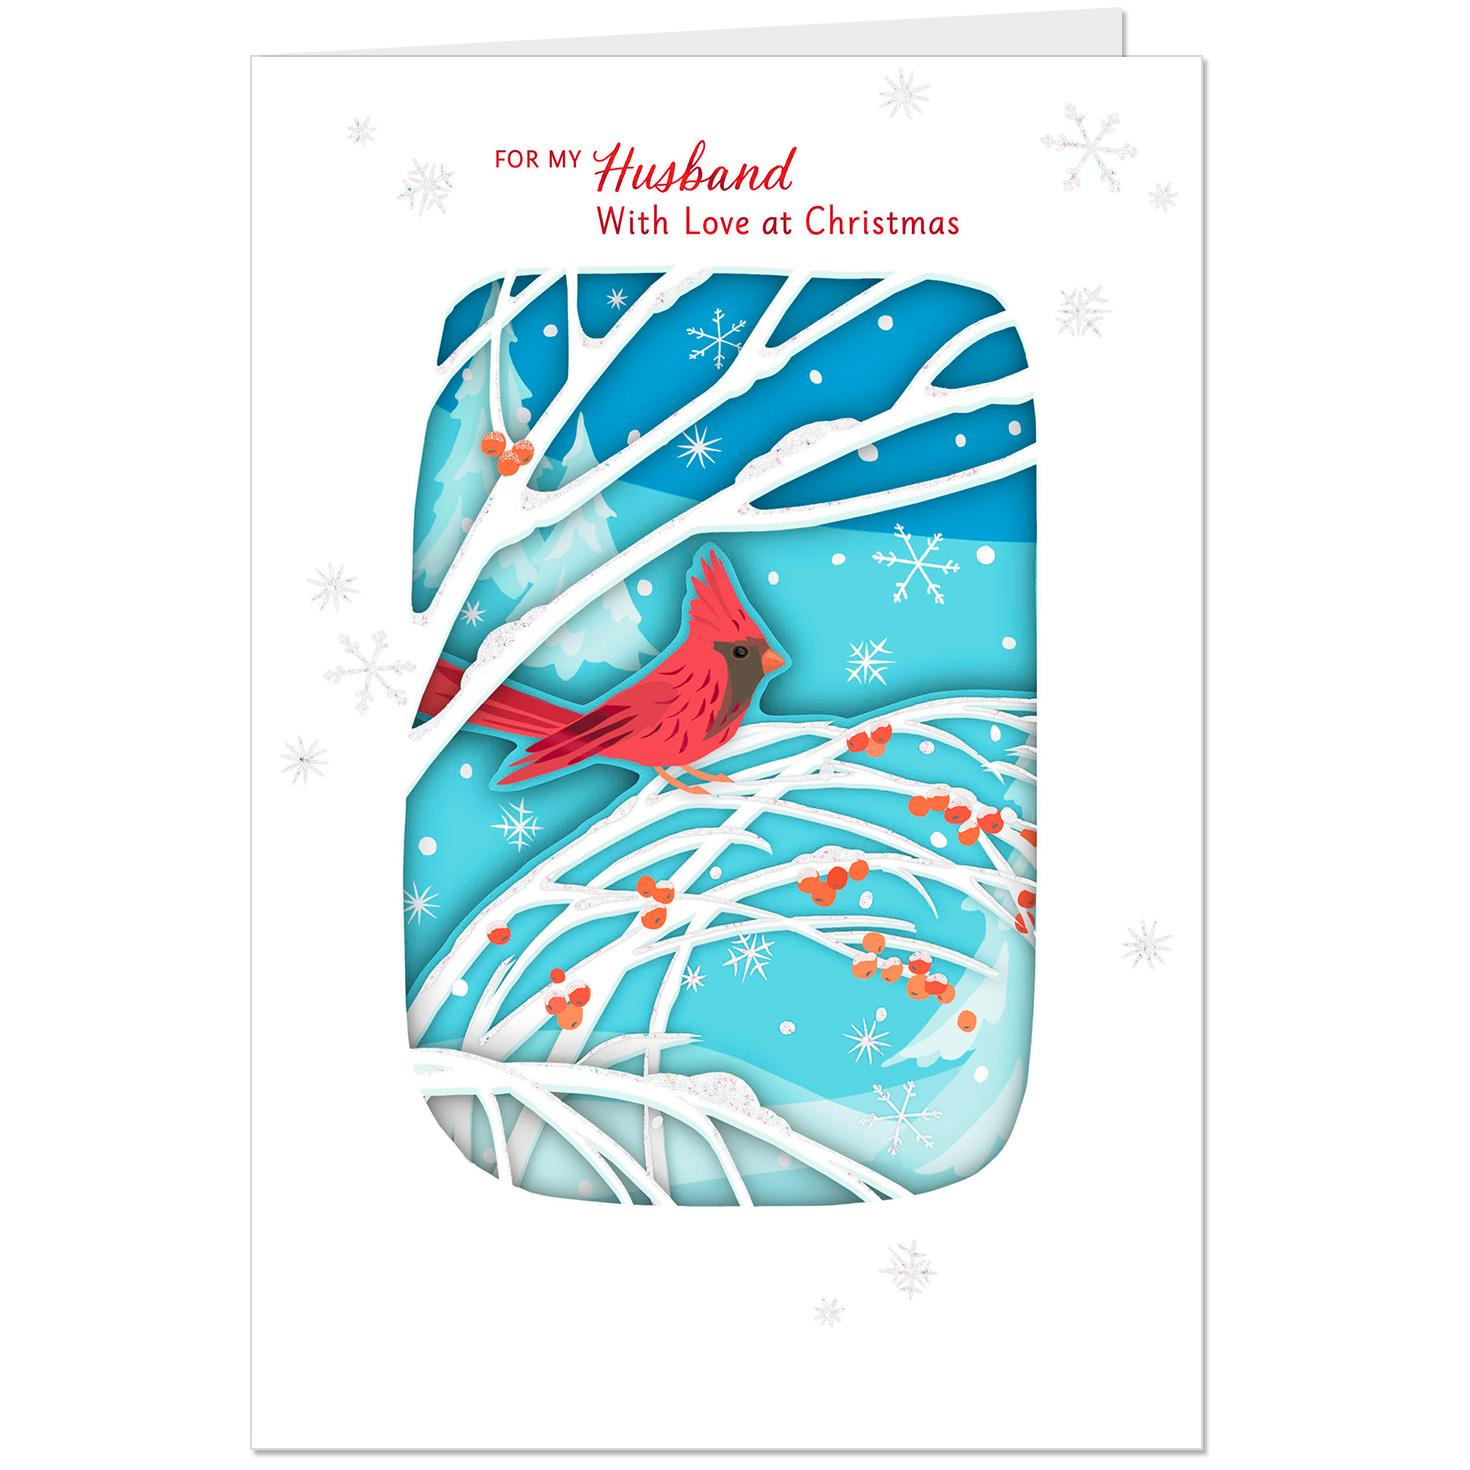 Winter Cardinal Layered Paper Christmas Card For Husband